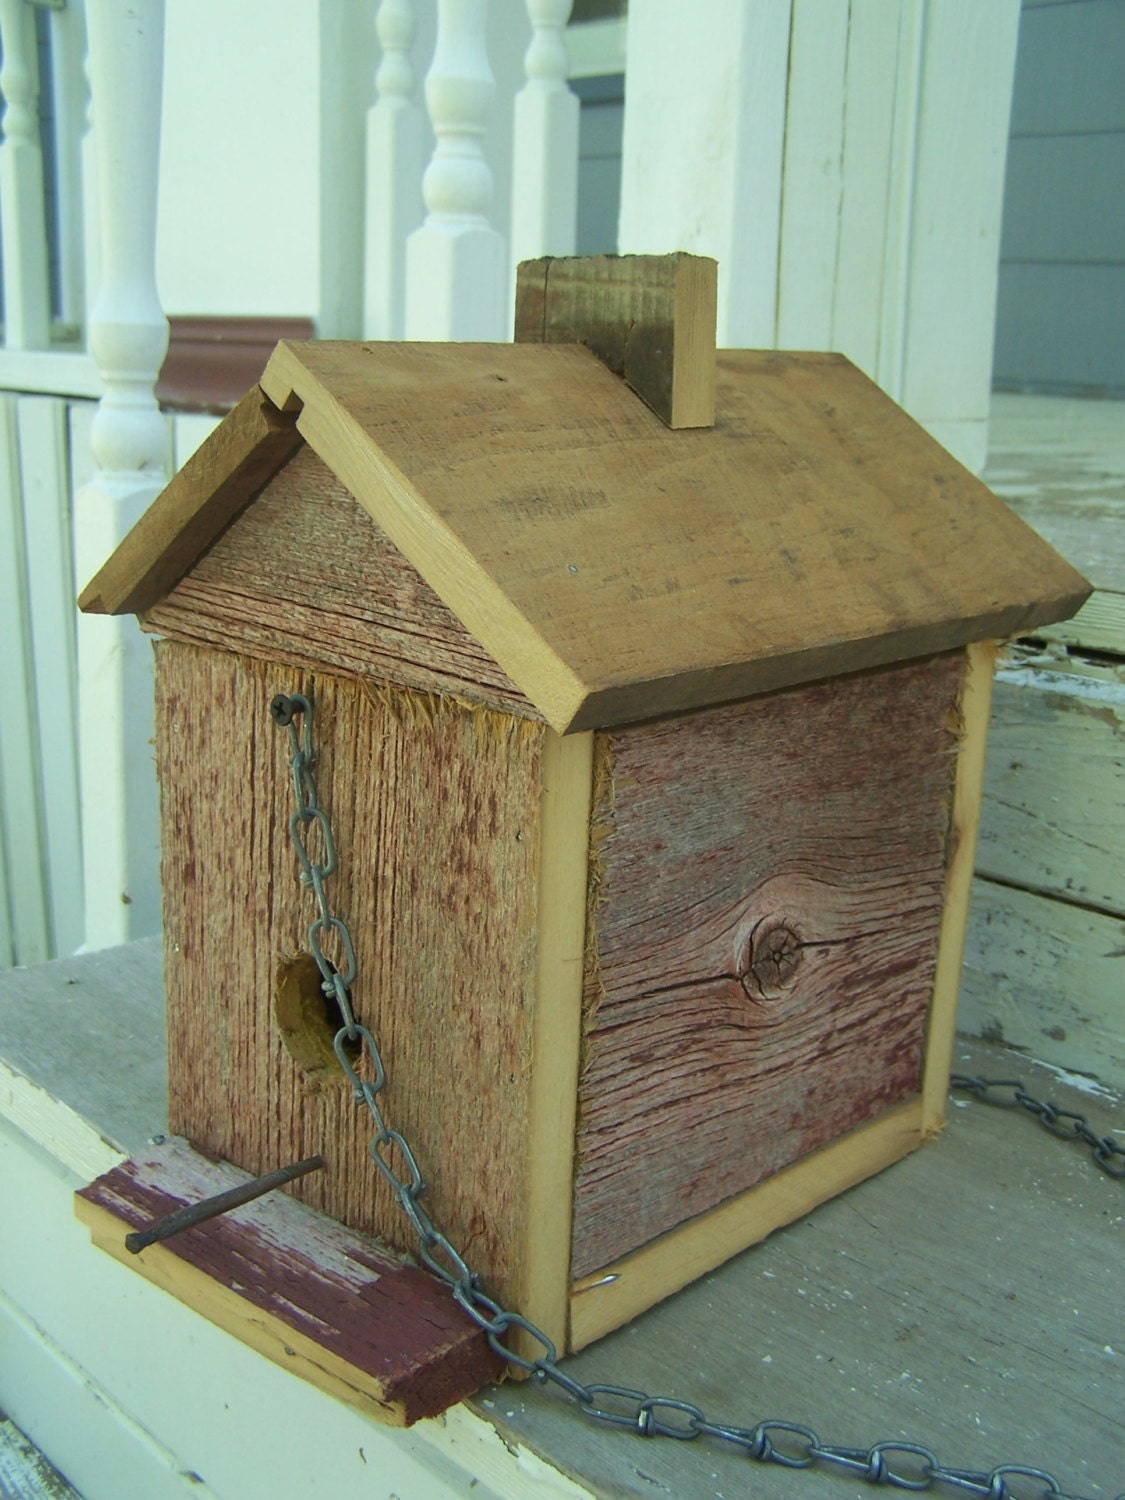 Rustic barn board bird house colonial style by - Old barn wood bird houses ...